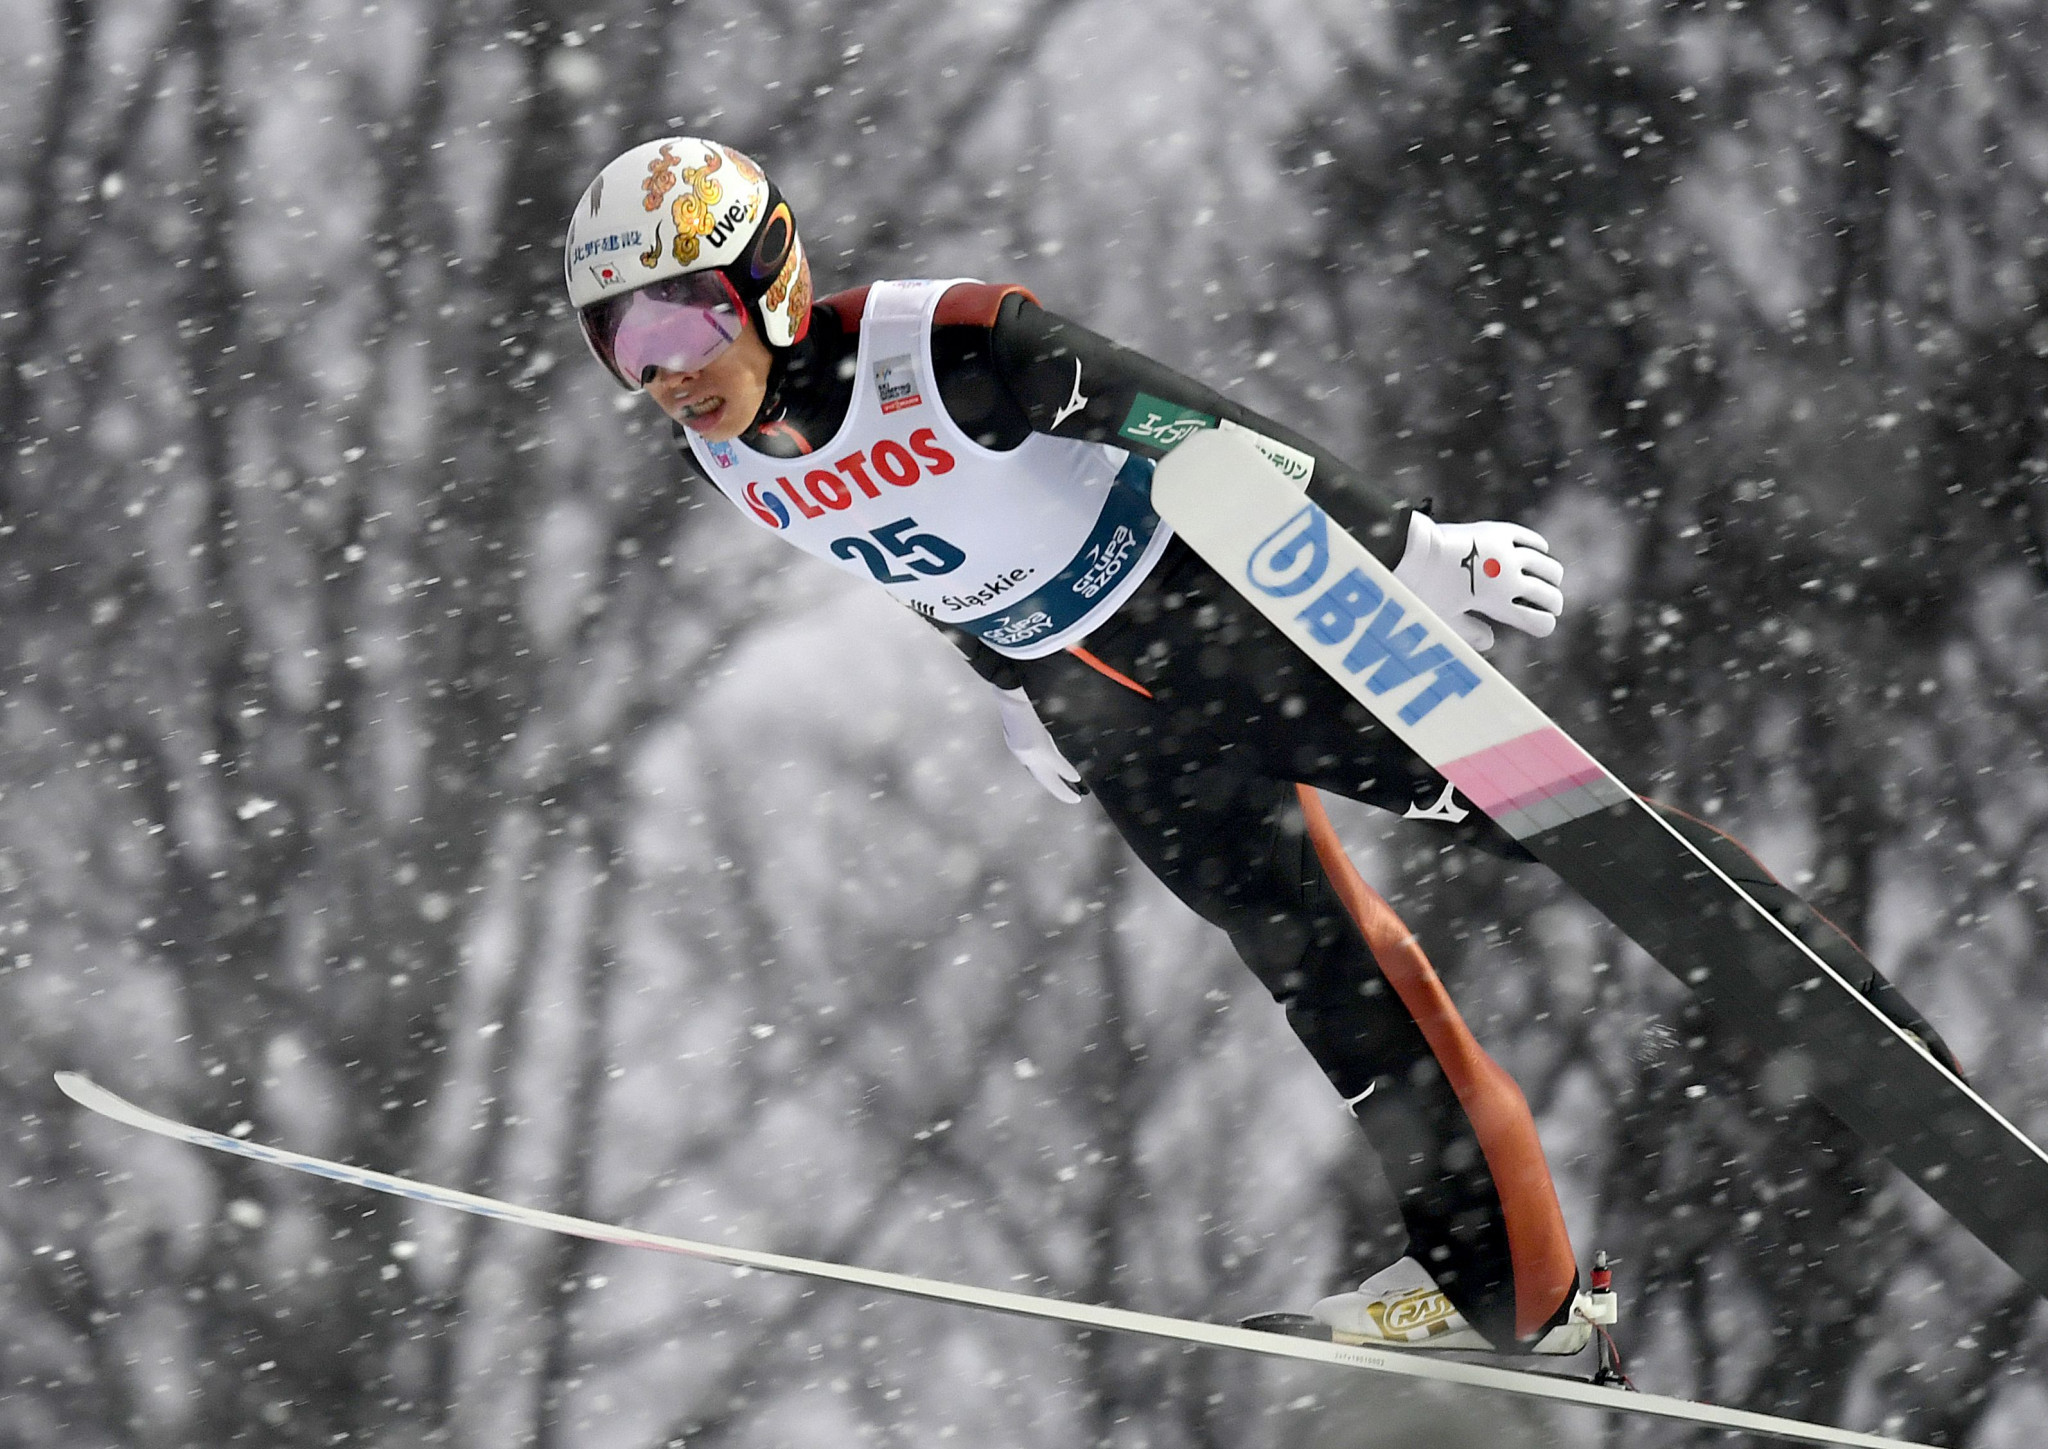 The third FIS Ski Jumping event is set to get underway in the Russian city of Nizhny Tagil ©Getty Images